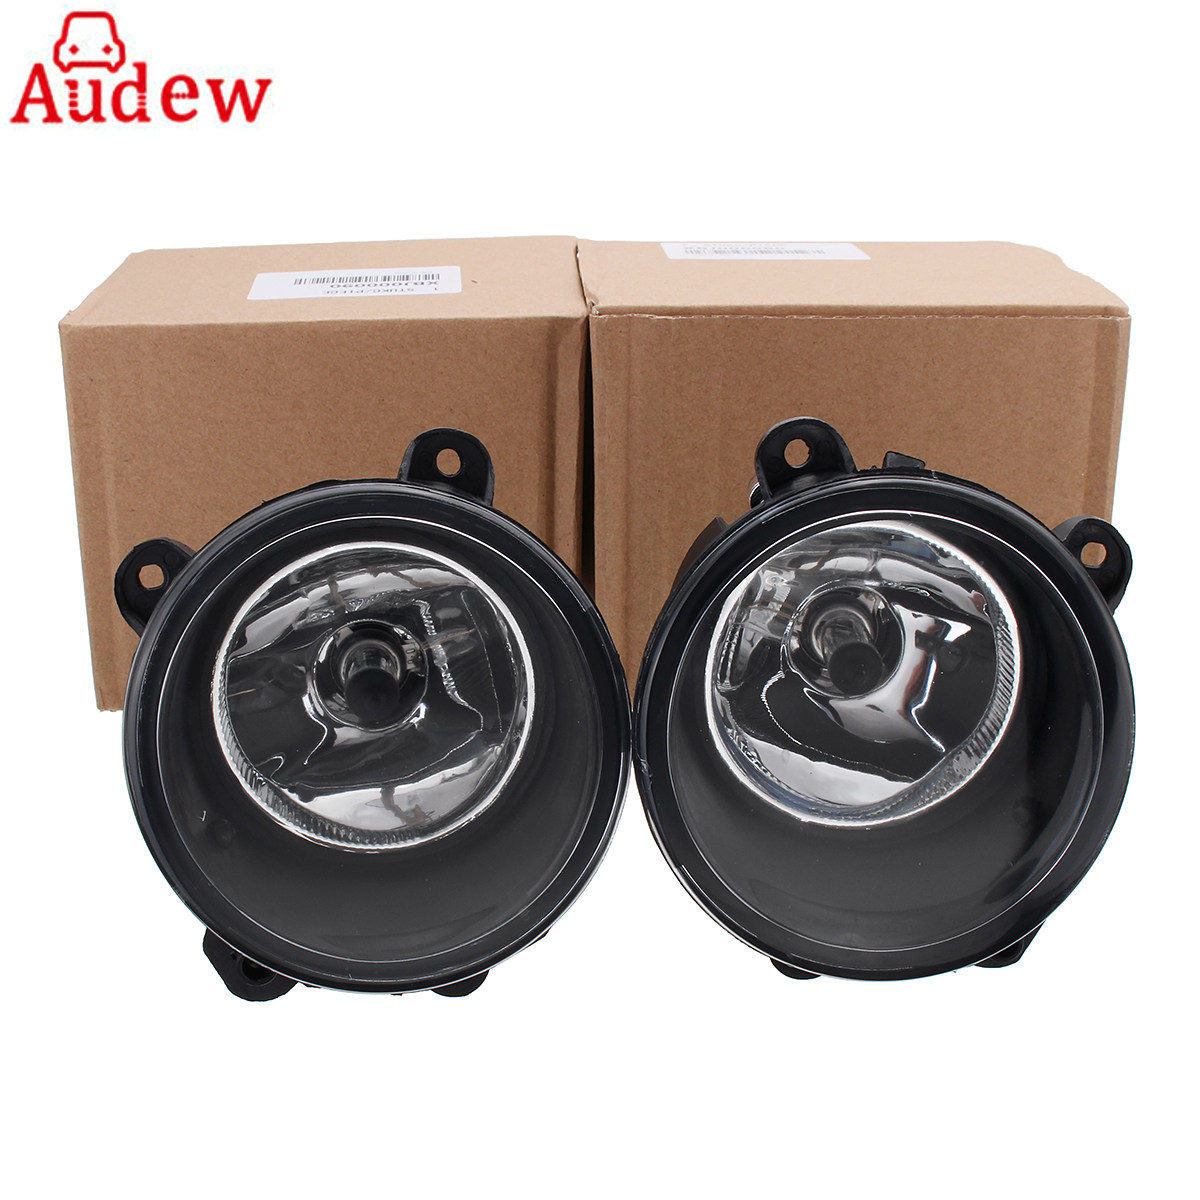 1Pair Clear Front Fog Lights Right&Left w/ H11 Bulbs For Land Rover Discovery 3 2003-2009 bellows front right left 2nd generation air suspension spring for land rover range rover 2 1994 2002 p38 gerneration ii